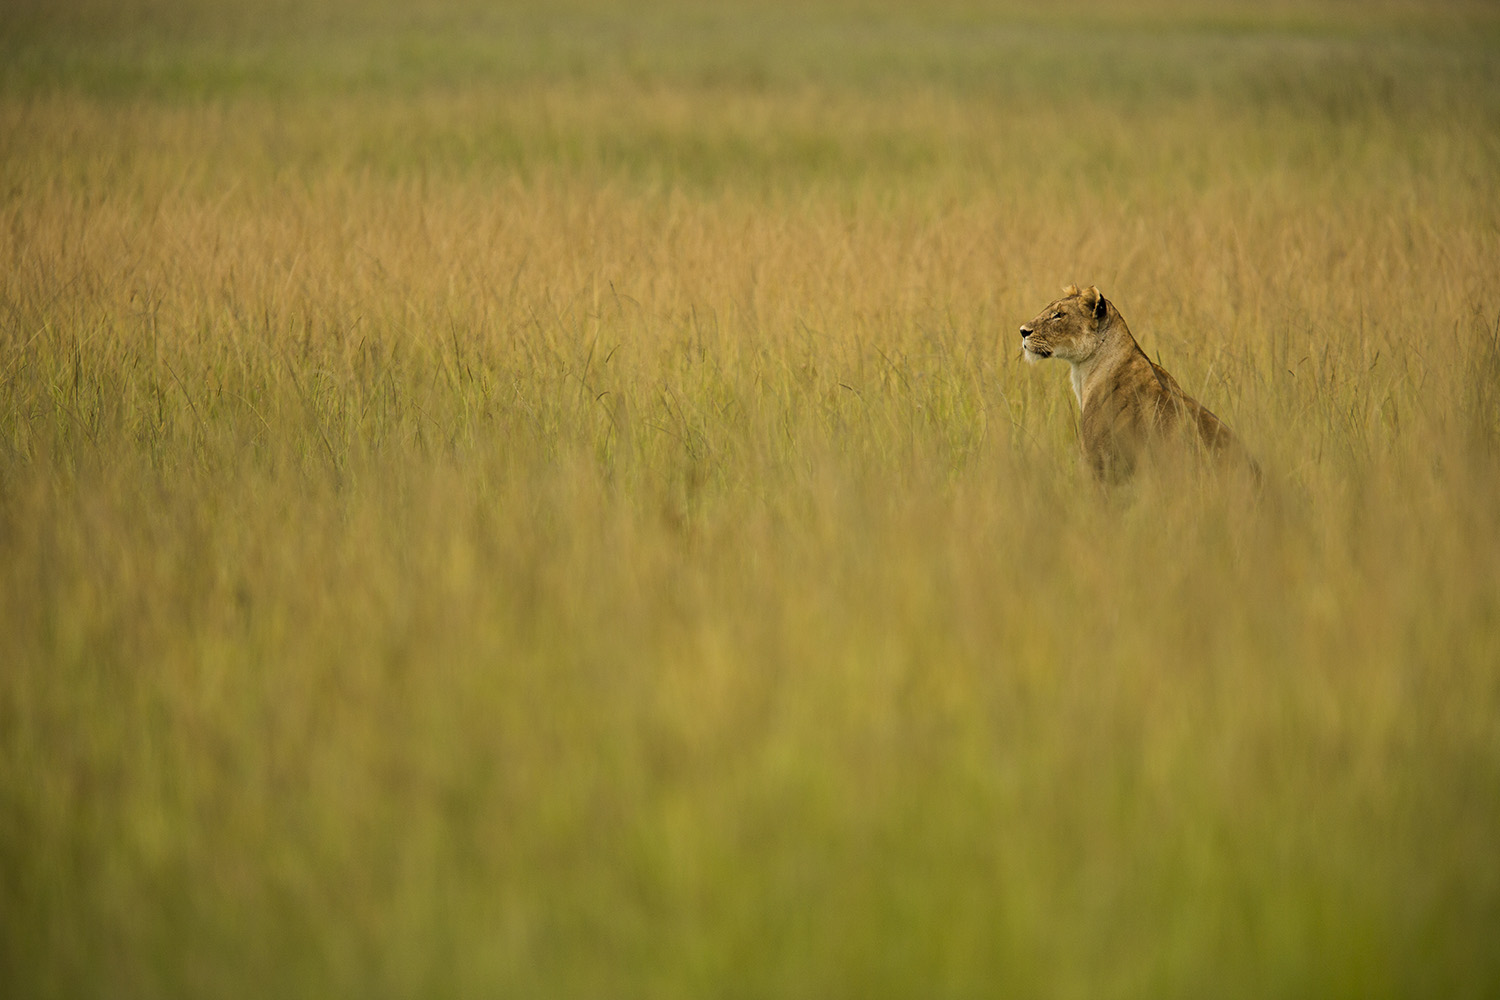 Lioness-in-yellow-grass